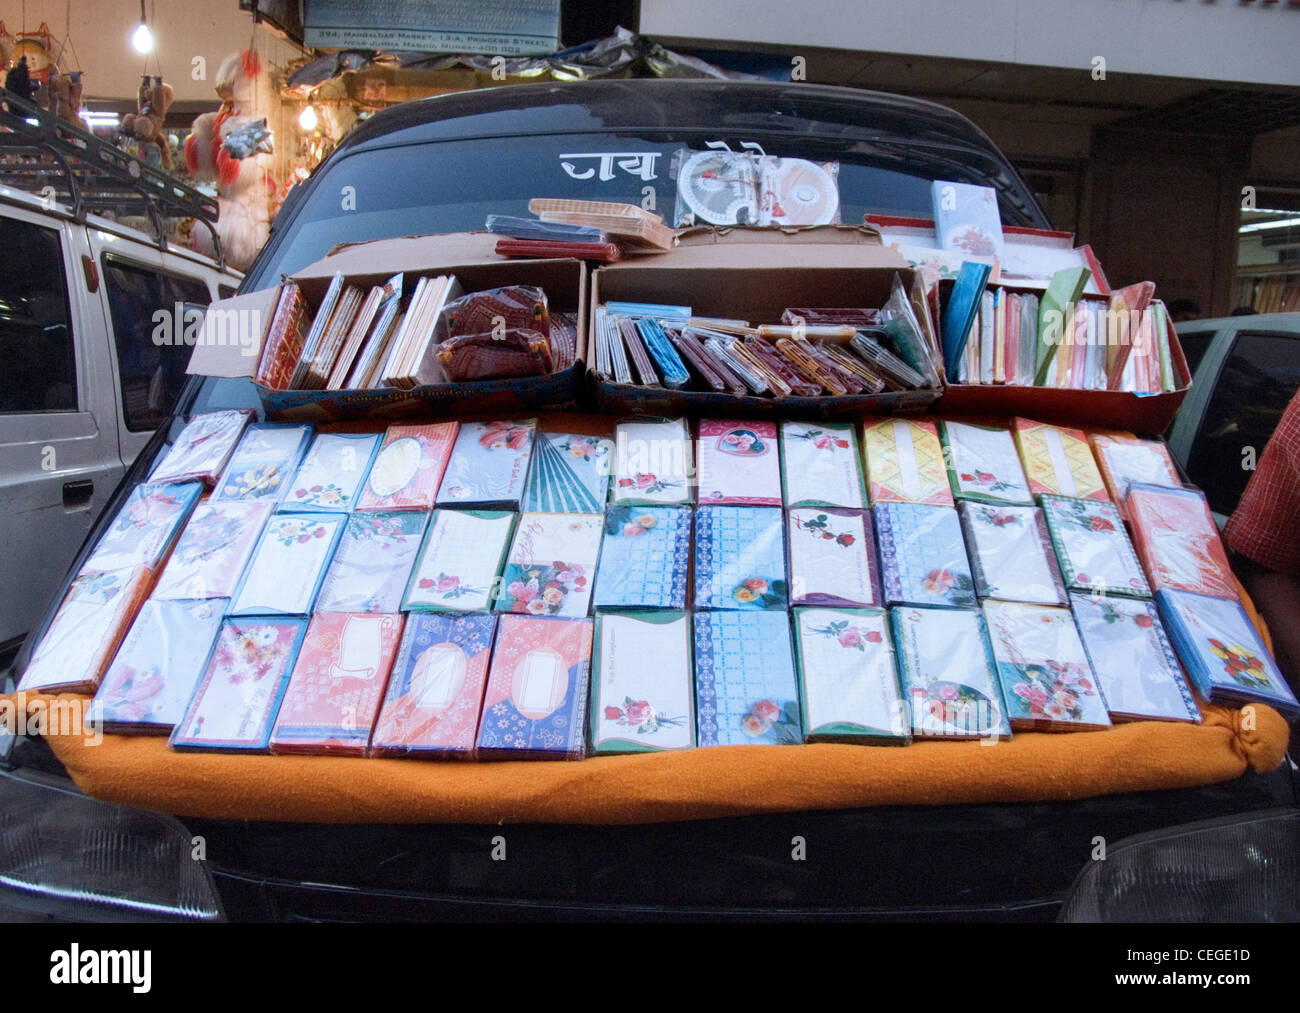 Street stall offering napkins over a car trunk, Mumbai, India - Stock Image